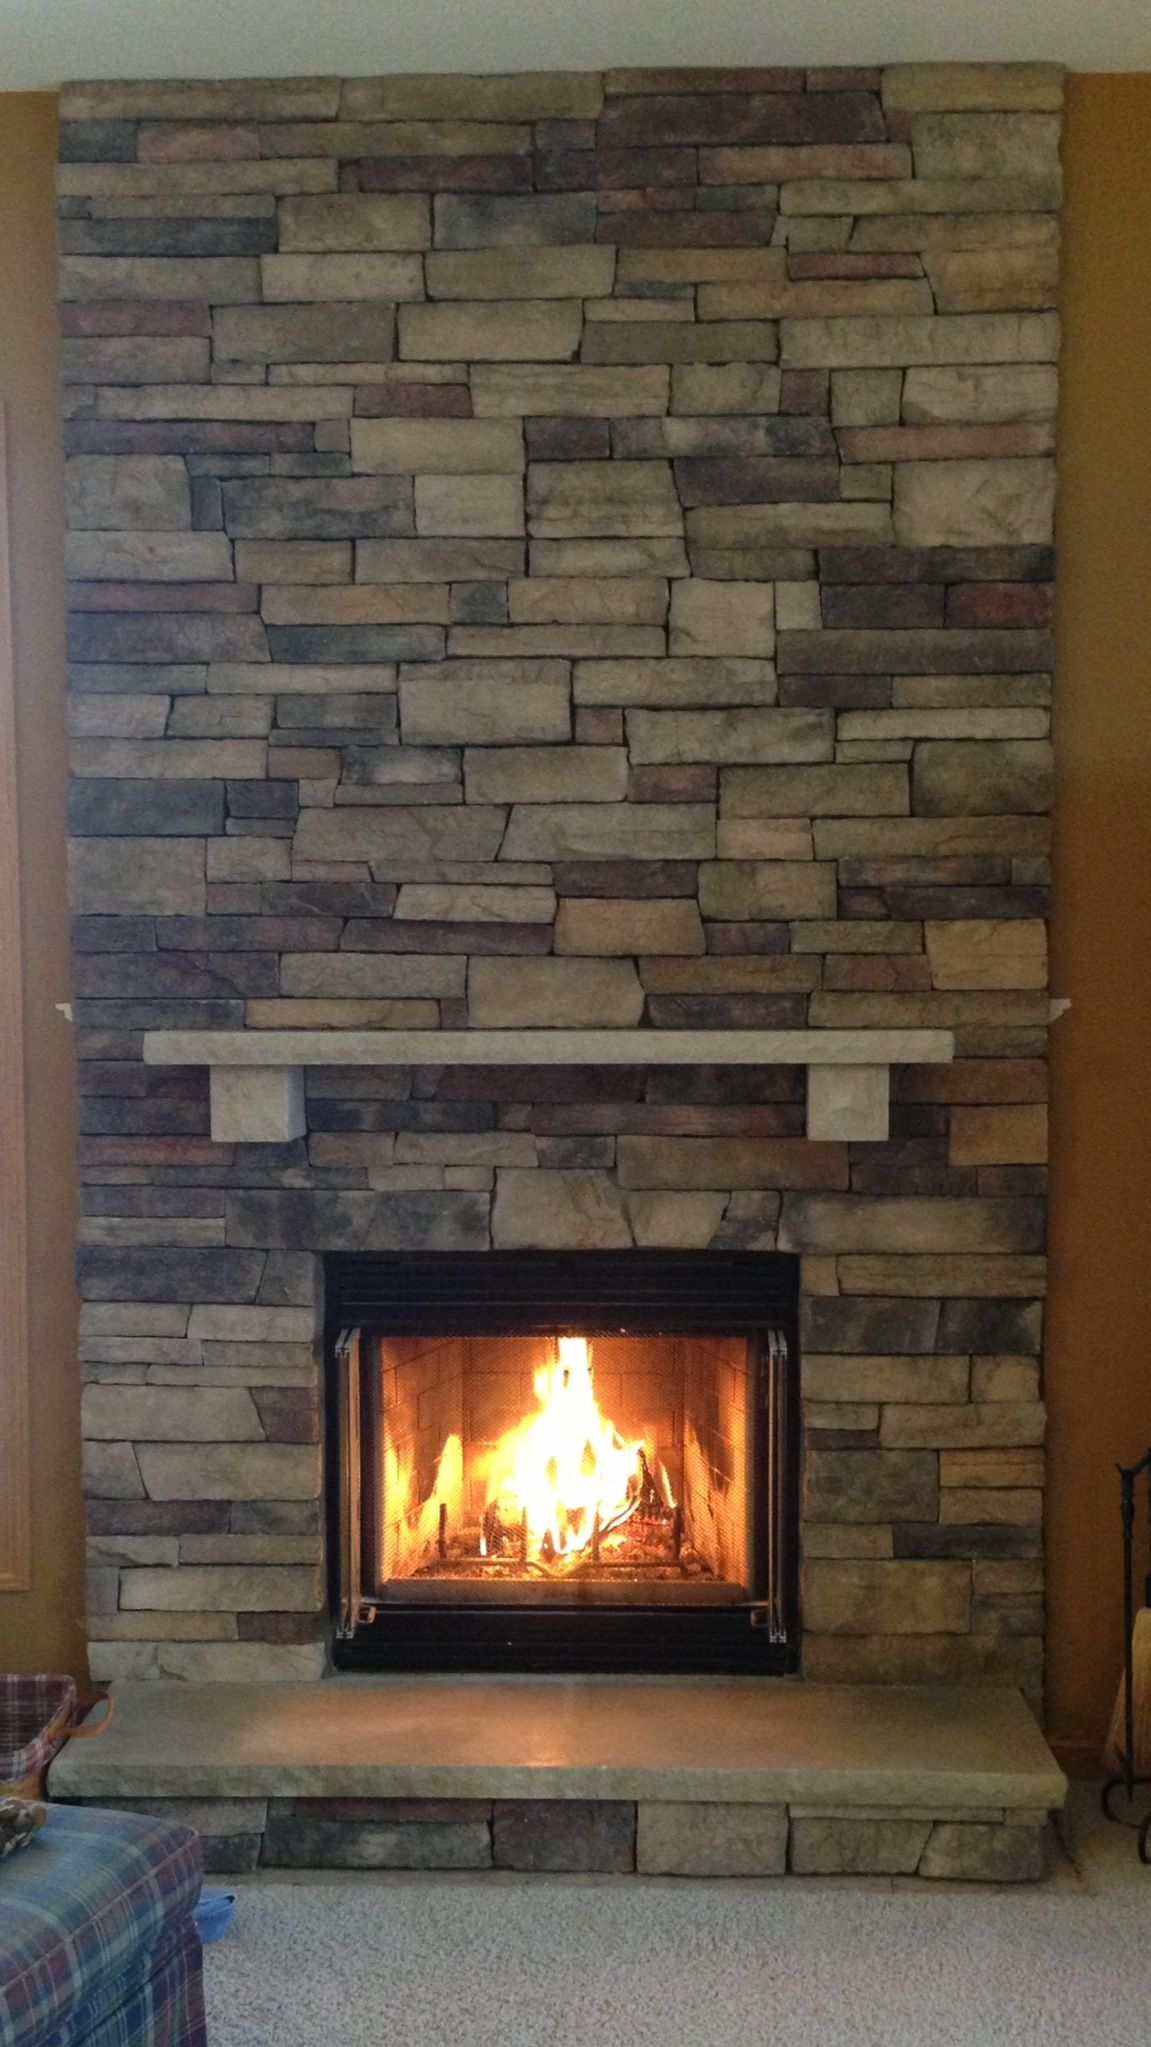 boral chardonnay country ledgestone fireplace stacked with rh pinterest com Drystack Ledgestone Fireplace Country Ledgestone Product